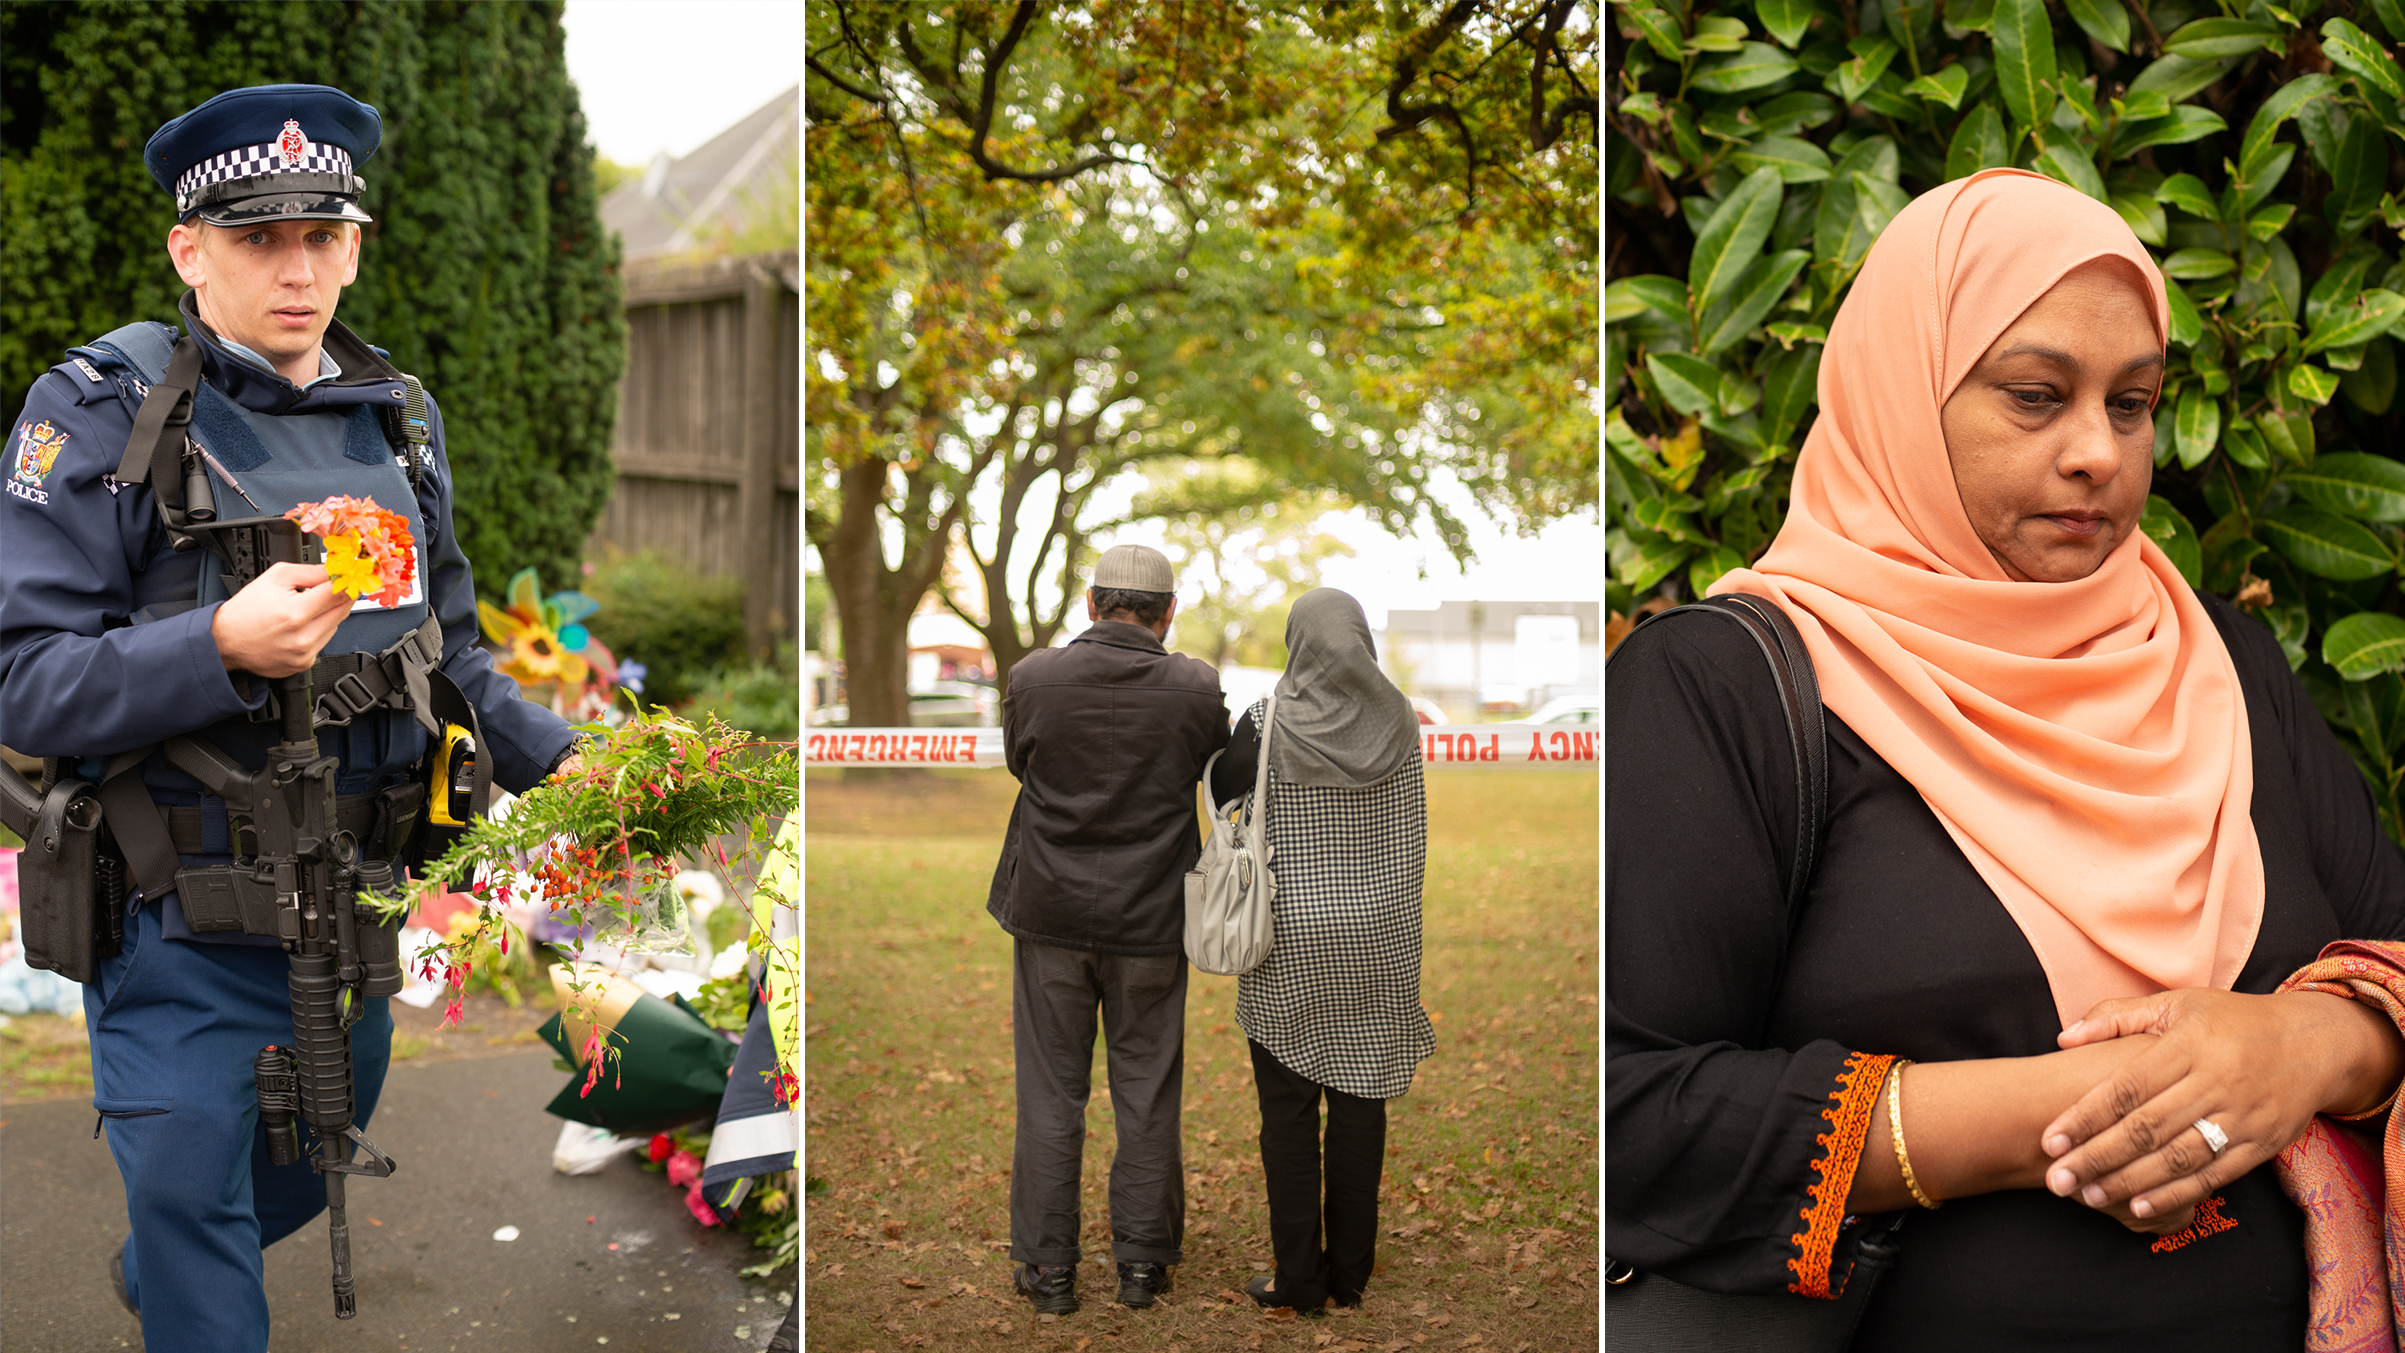 Survivors, family members and New Zealanders of every creed and color paid tribute to the victims of the mosque shootings in Christchurch